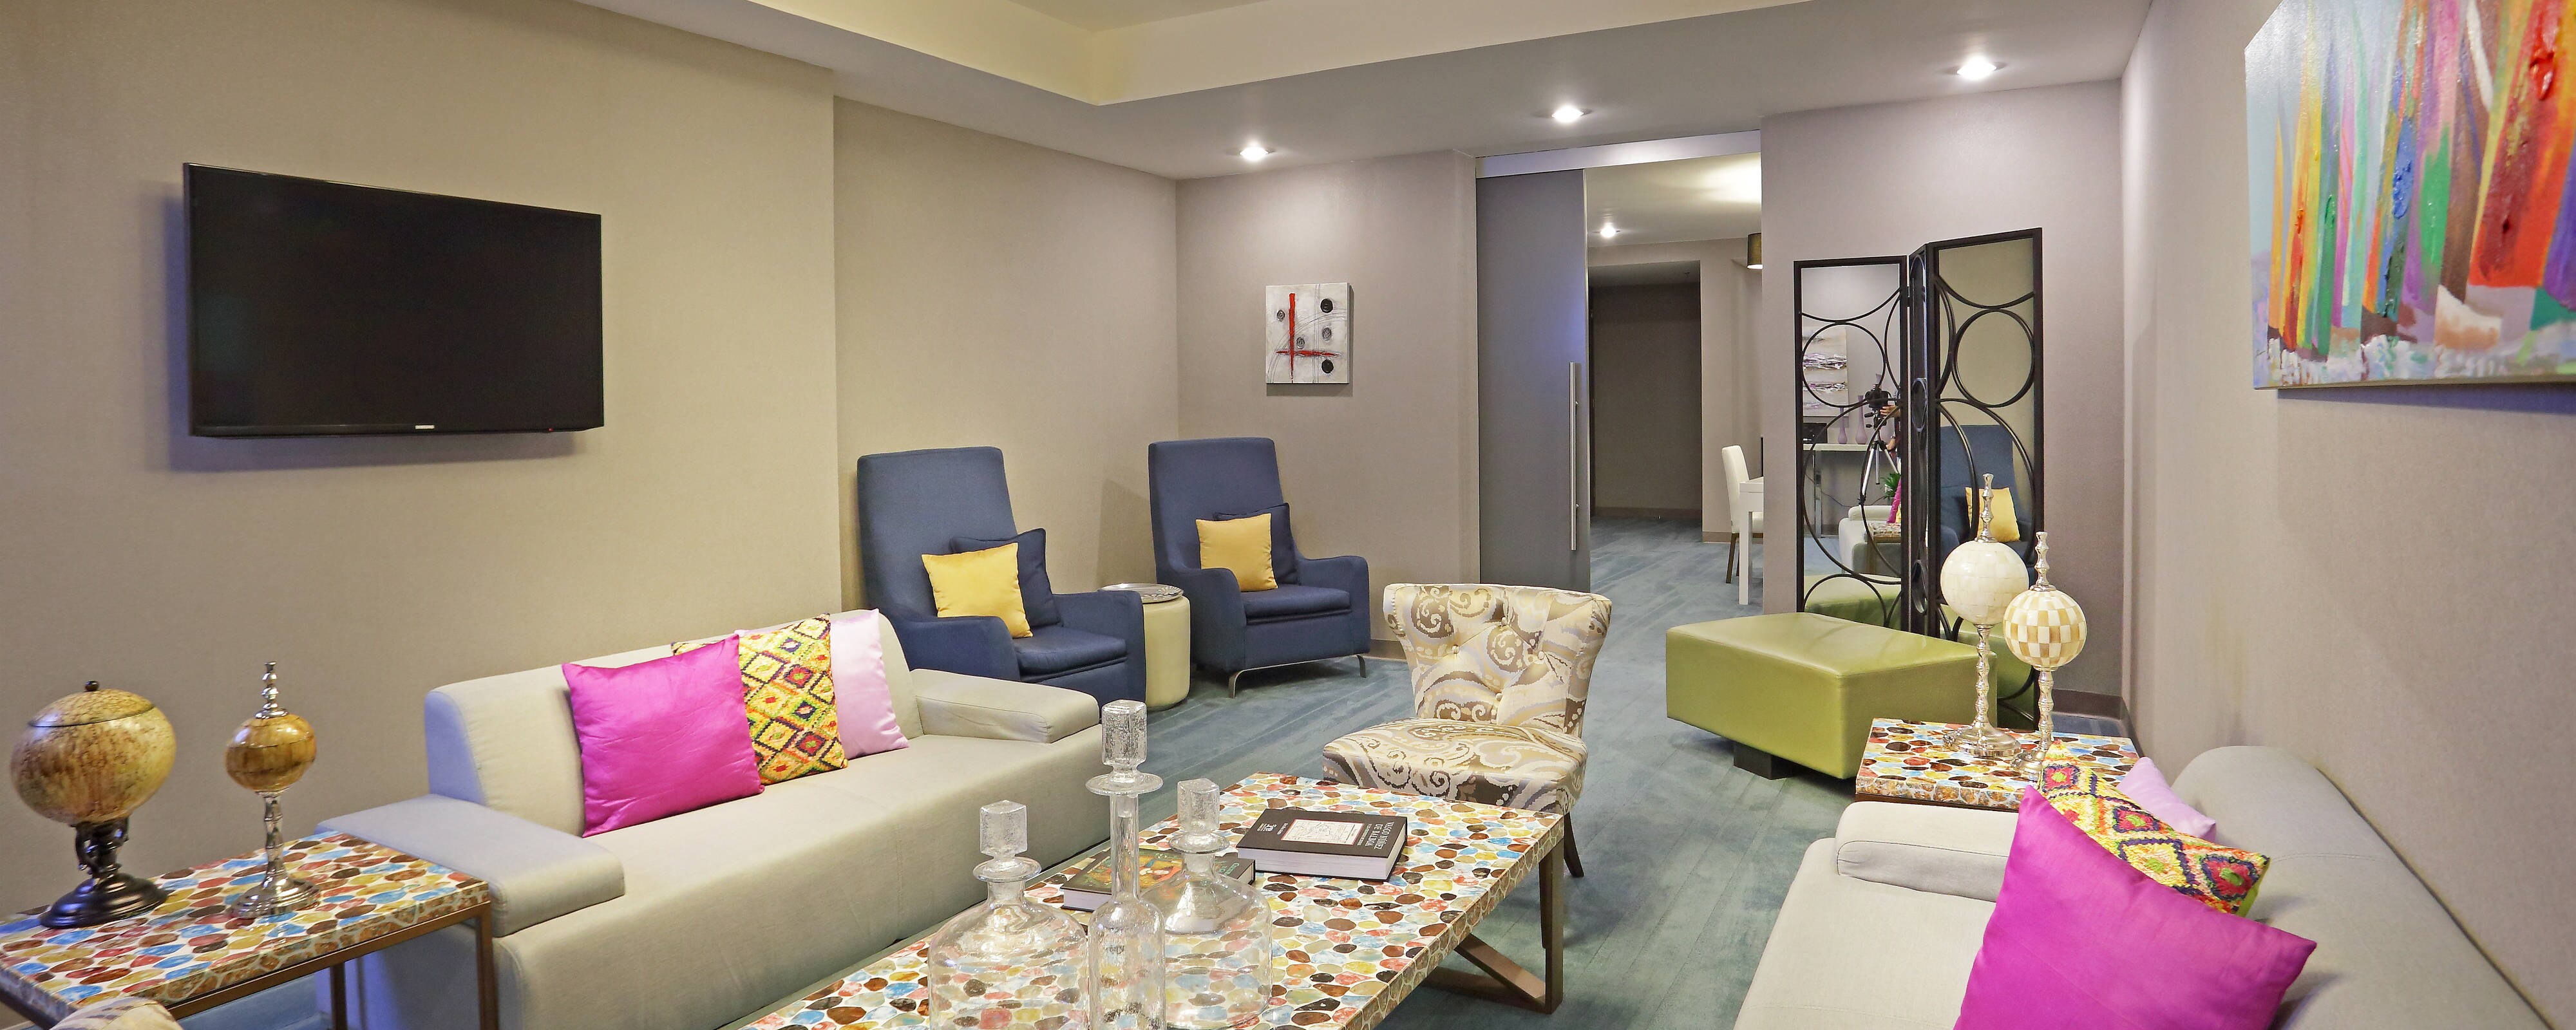 Aloft ultra savvy Living Room Suite